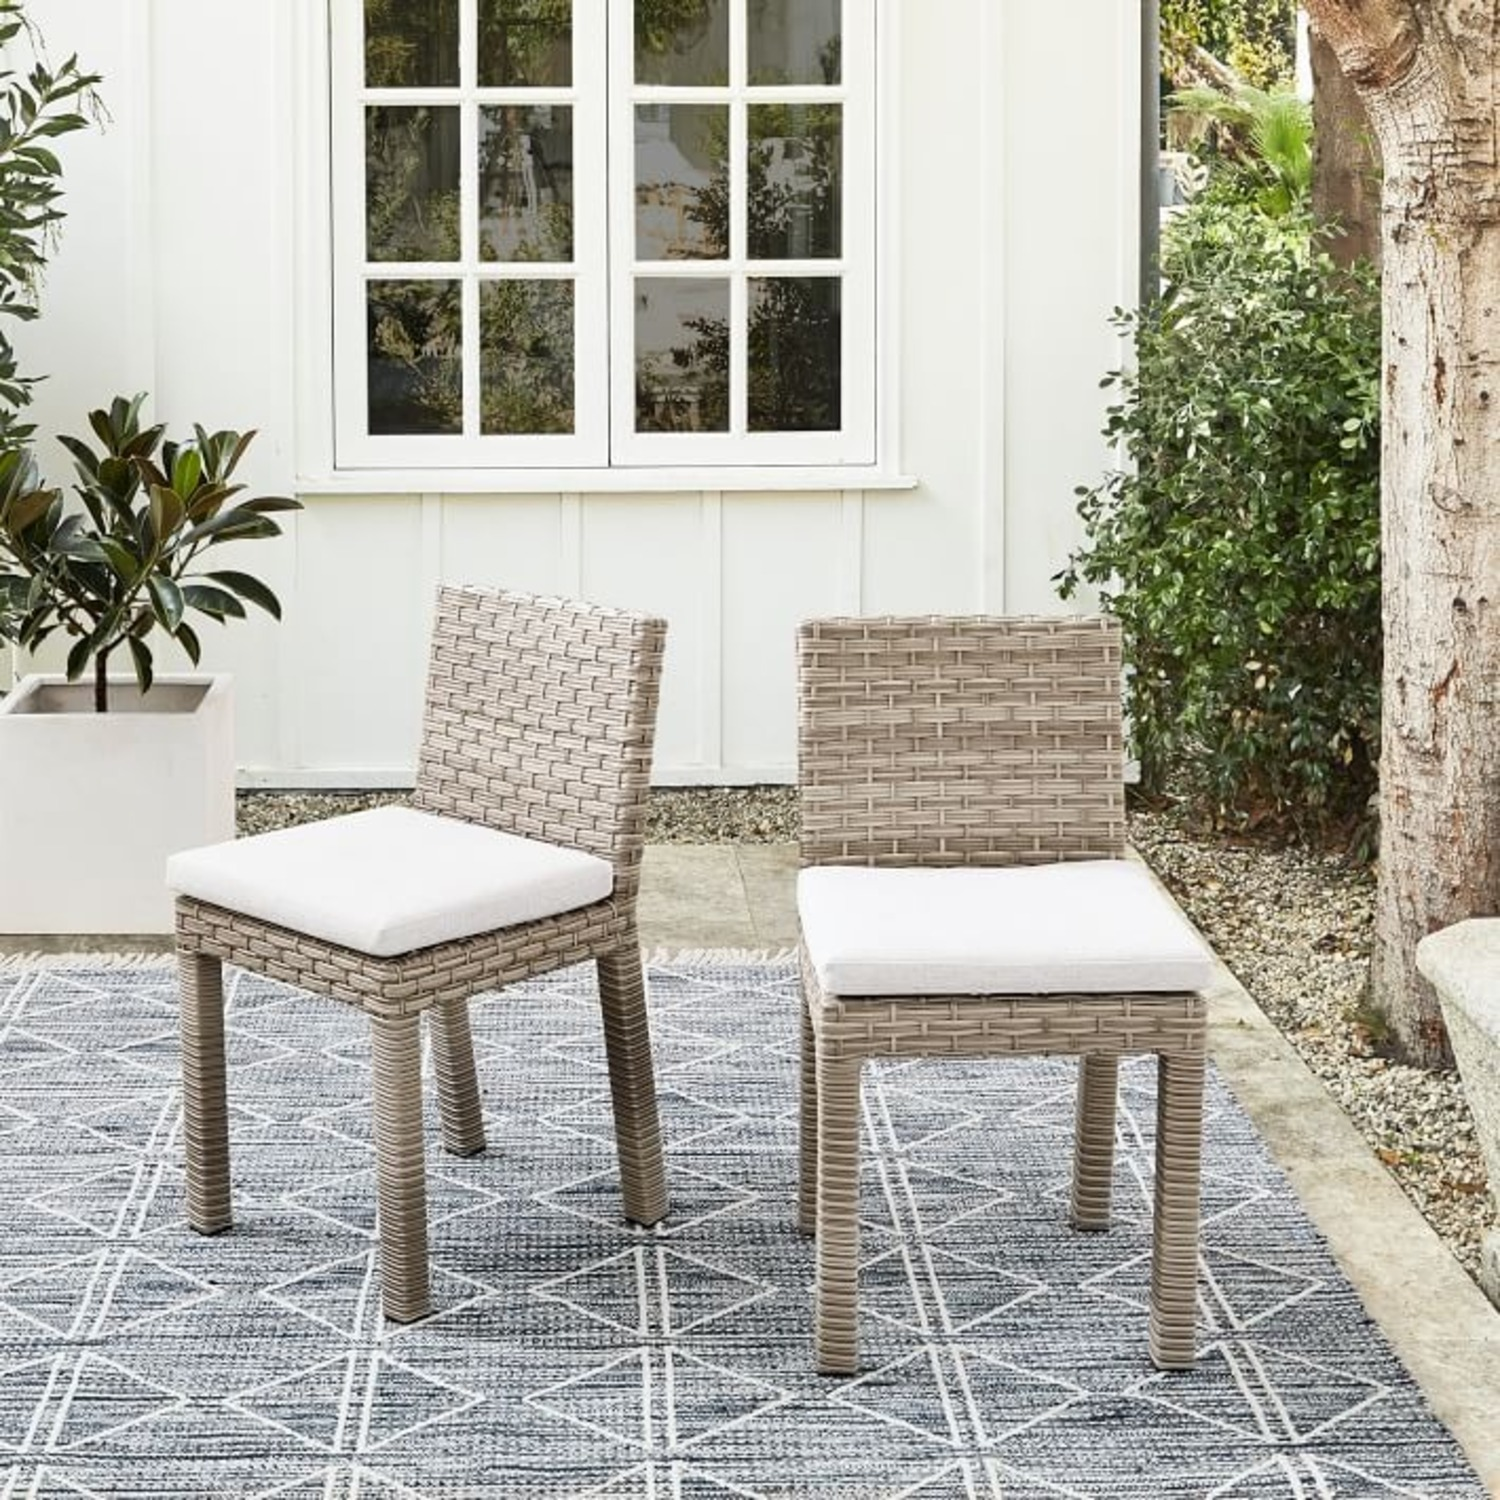 West Elm Urban Outdoor Dining Chair, Set of 2 - image-3